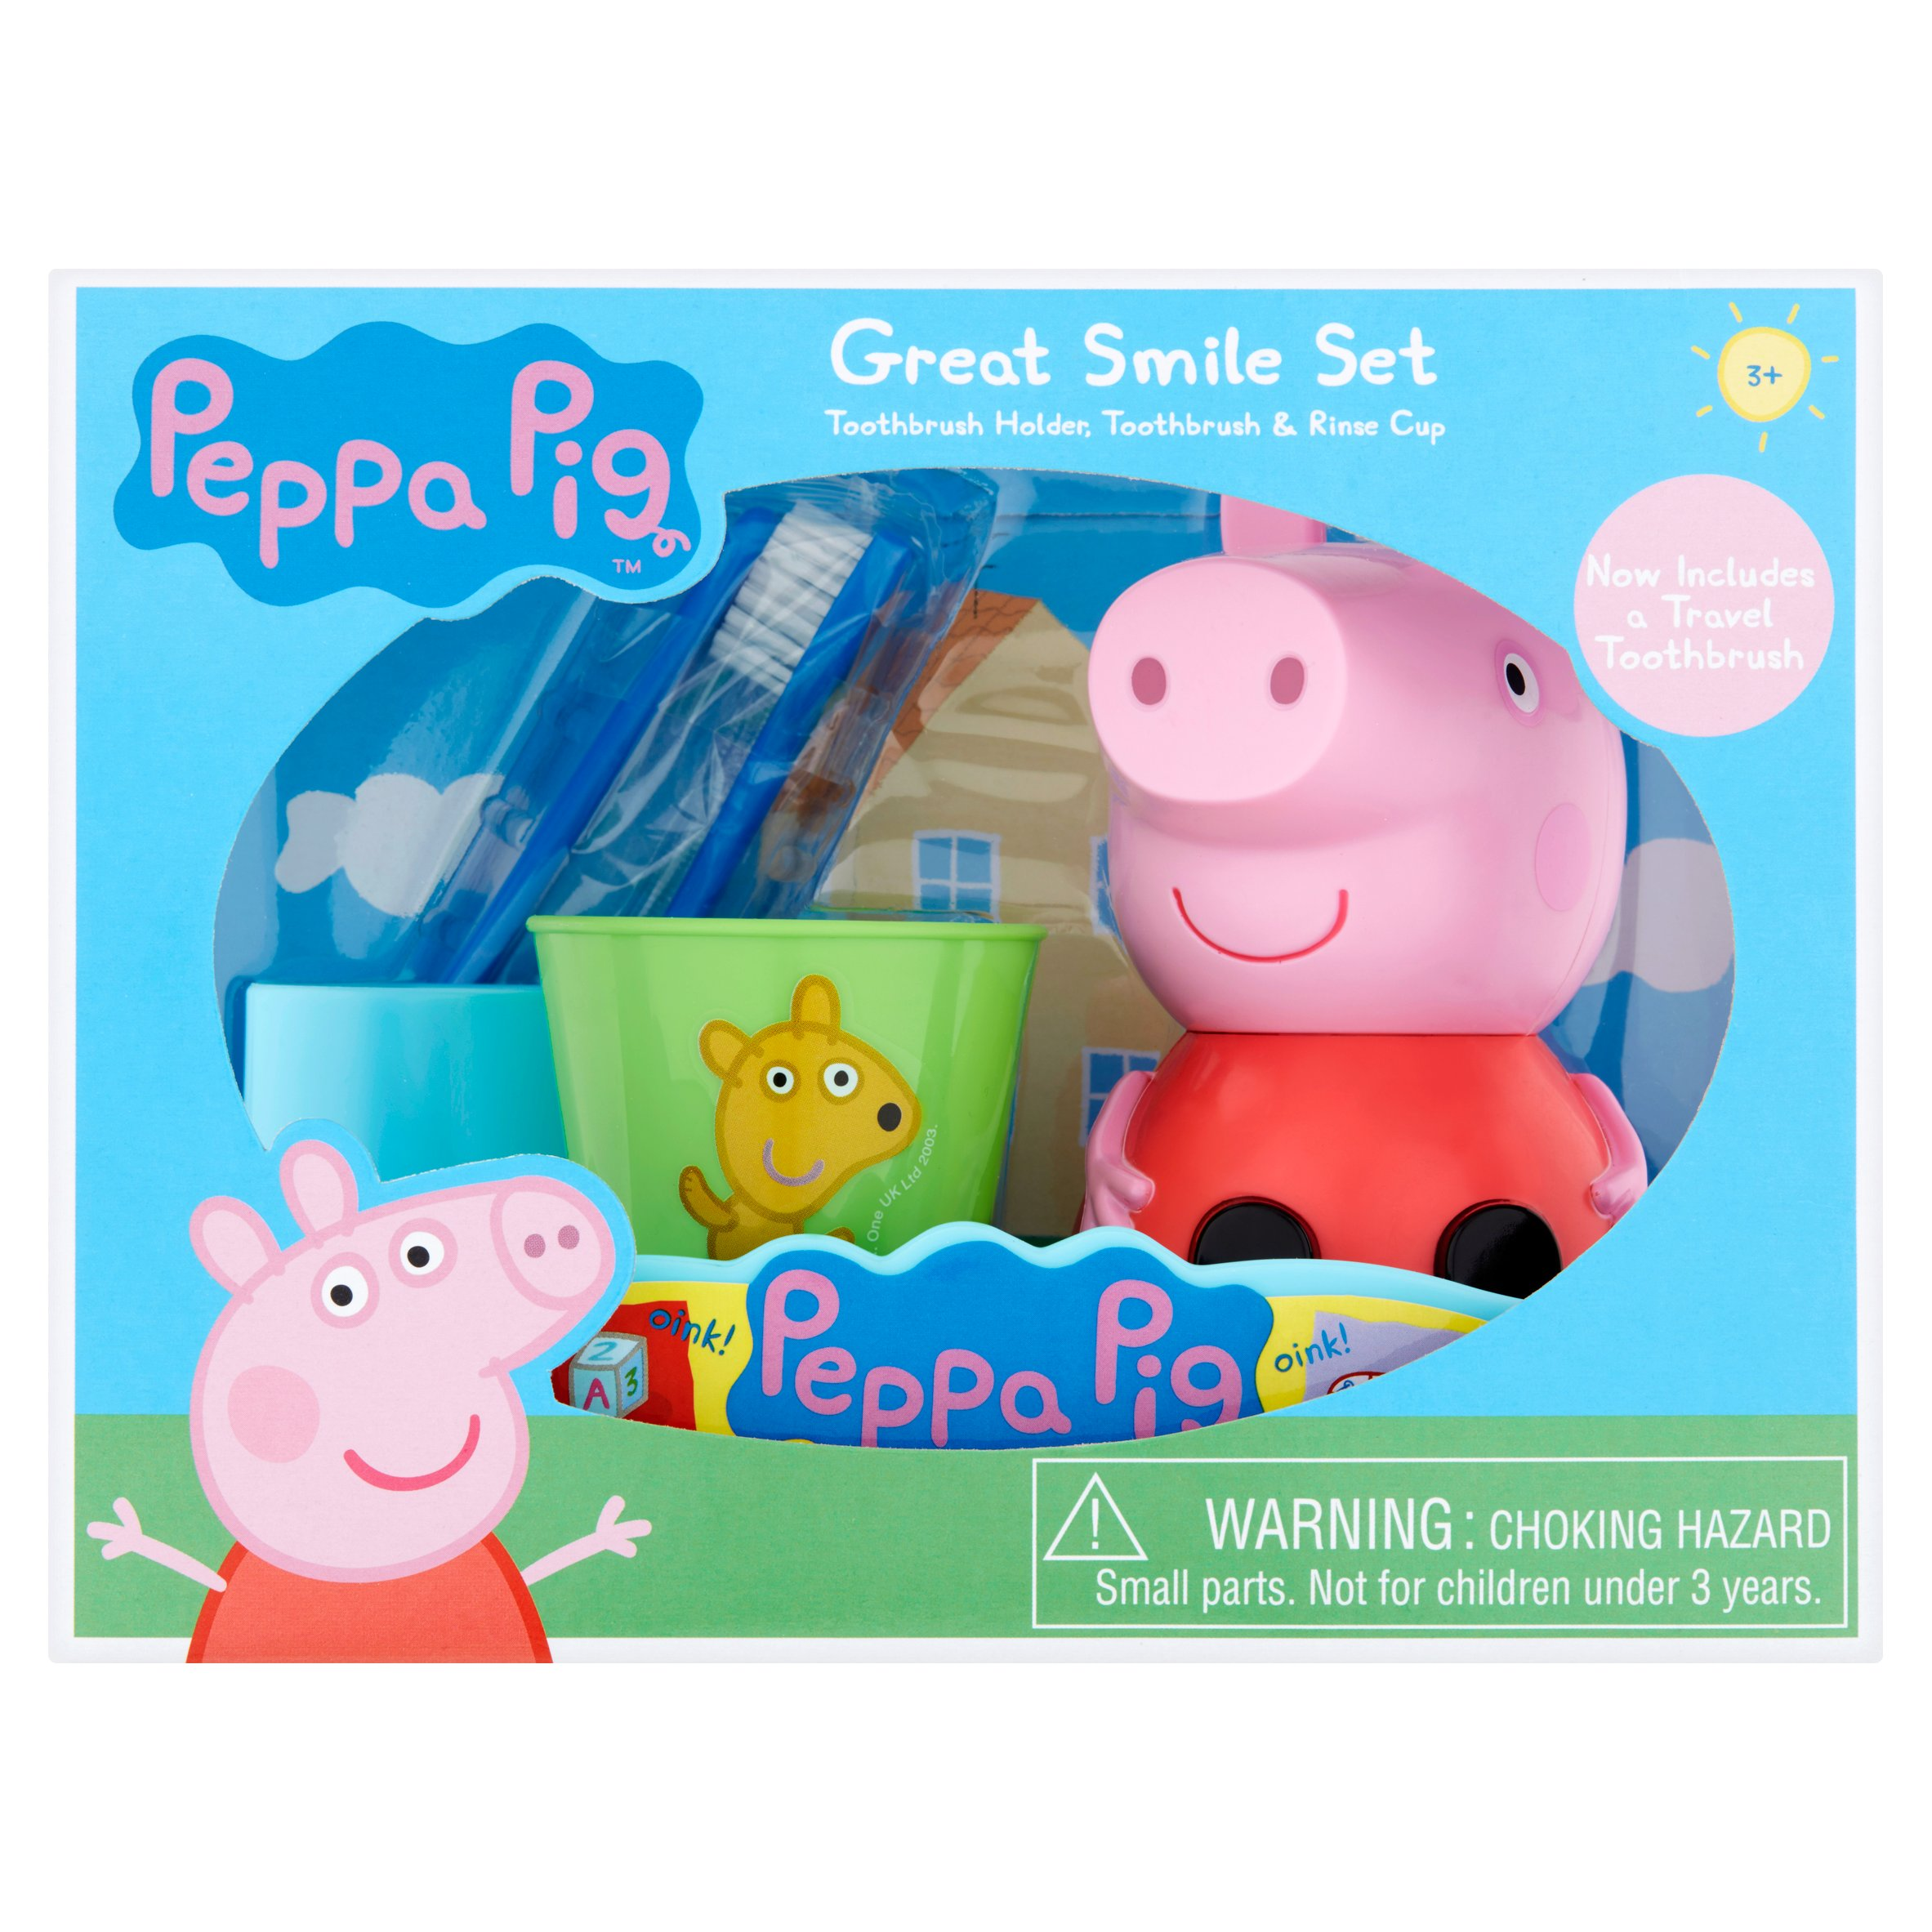 Peppa Pig Toothbrush, Toothbrush Holder, Rinse Cup Gift Set, 3pcs